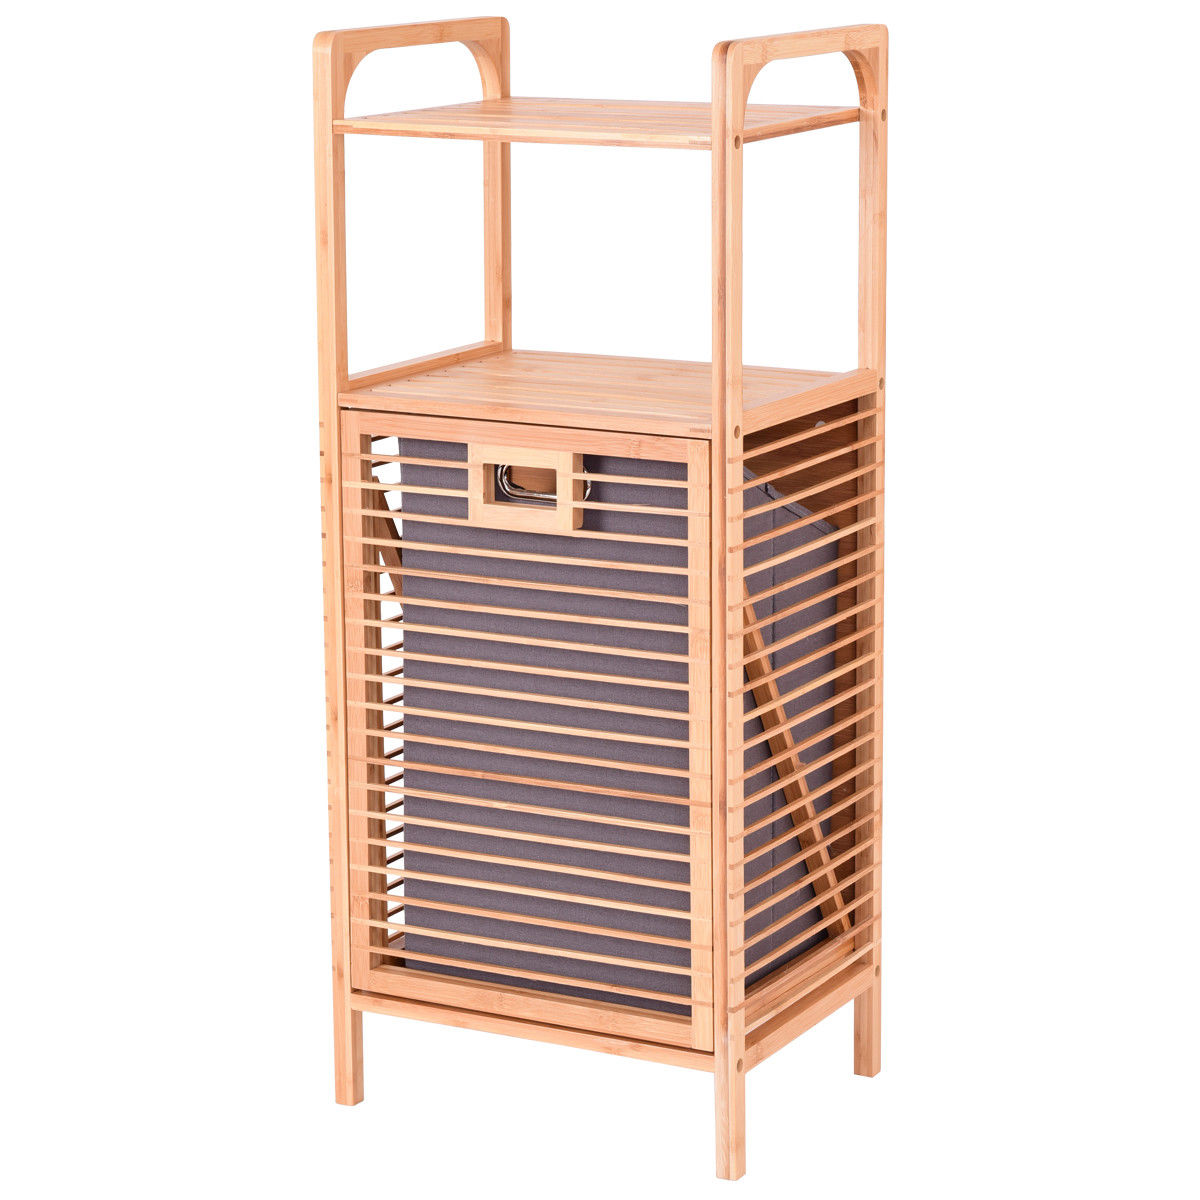 Costway Laundry Hamper Tilt Out Bin Bamboo Shelf Slat Frame Space Saving Storage